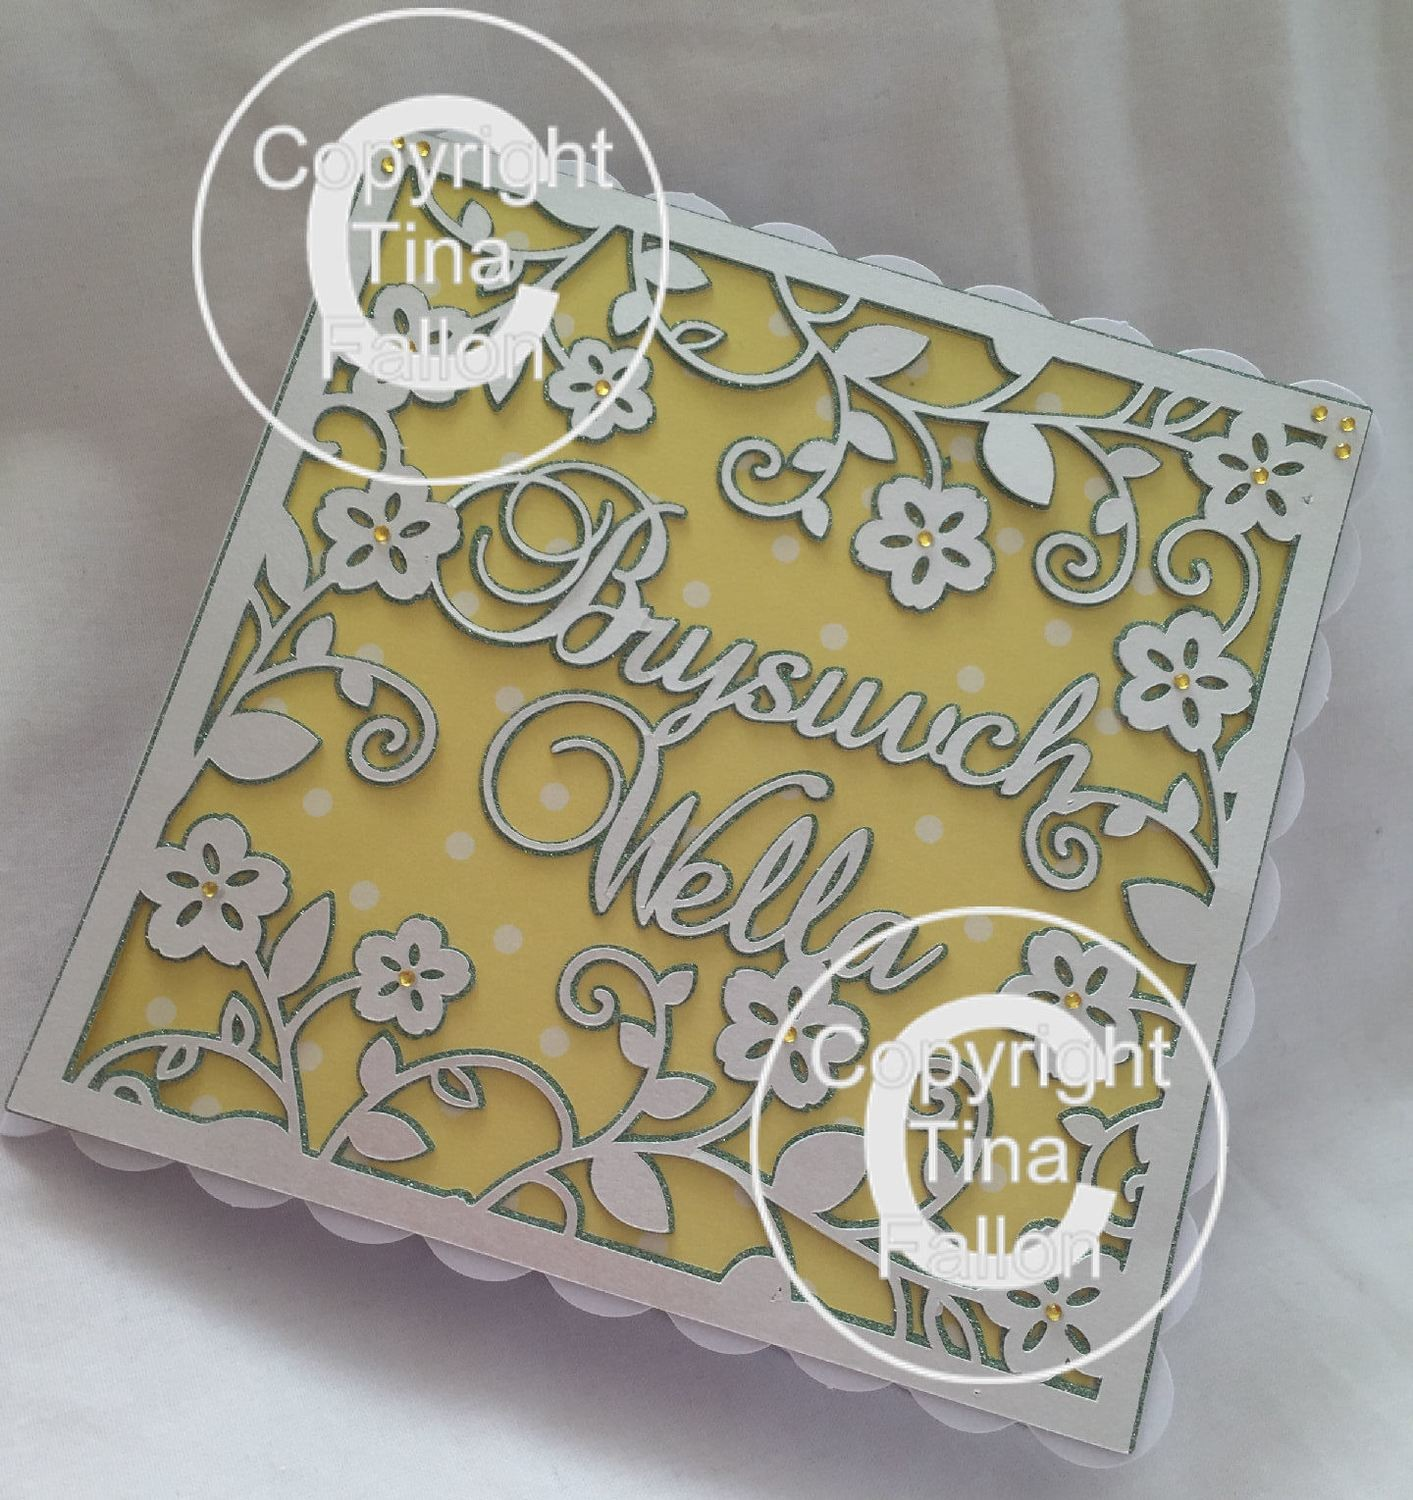 Brysiwch Wella Get Well Soon - Welsh / Wales card topper 3 layers